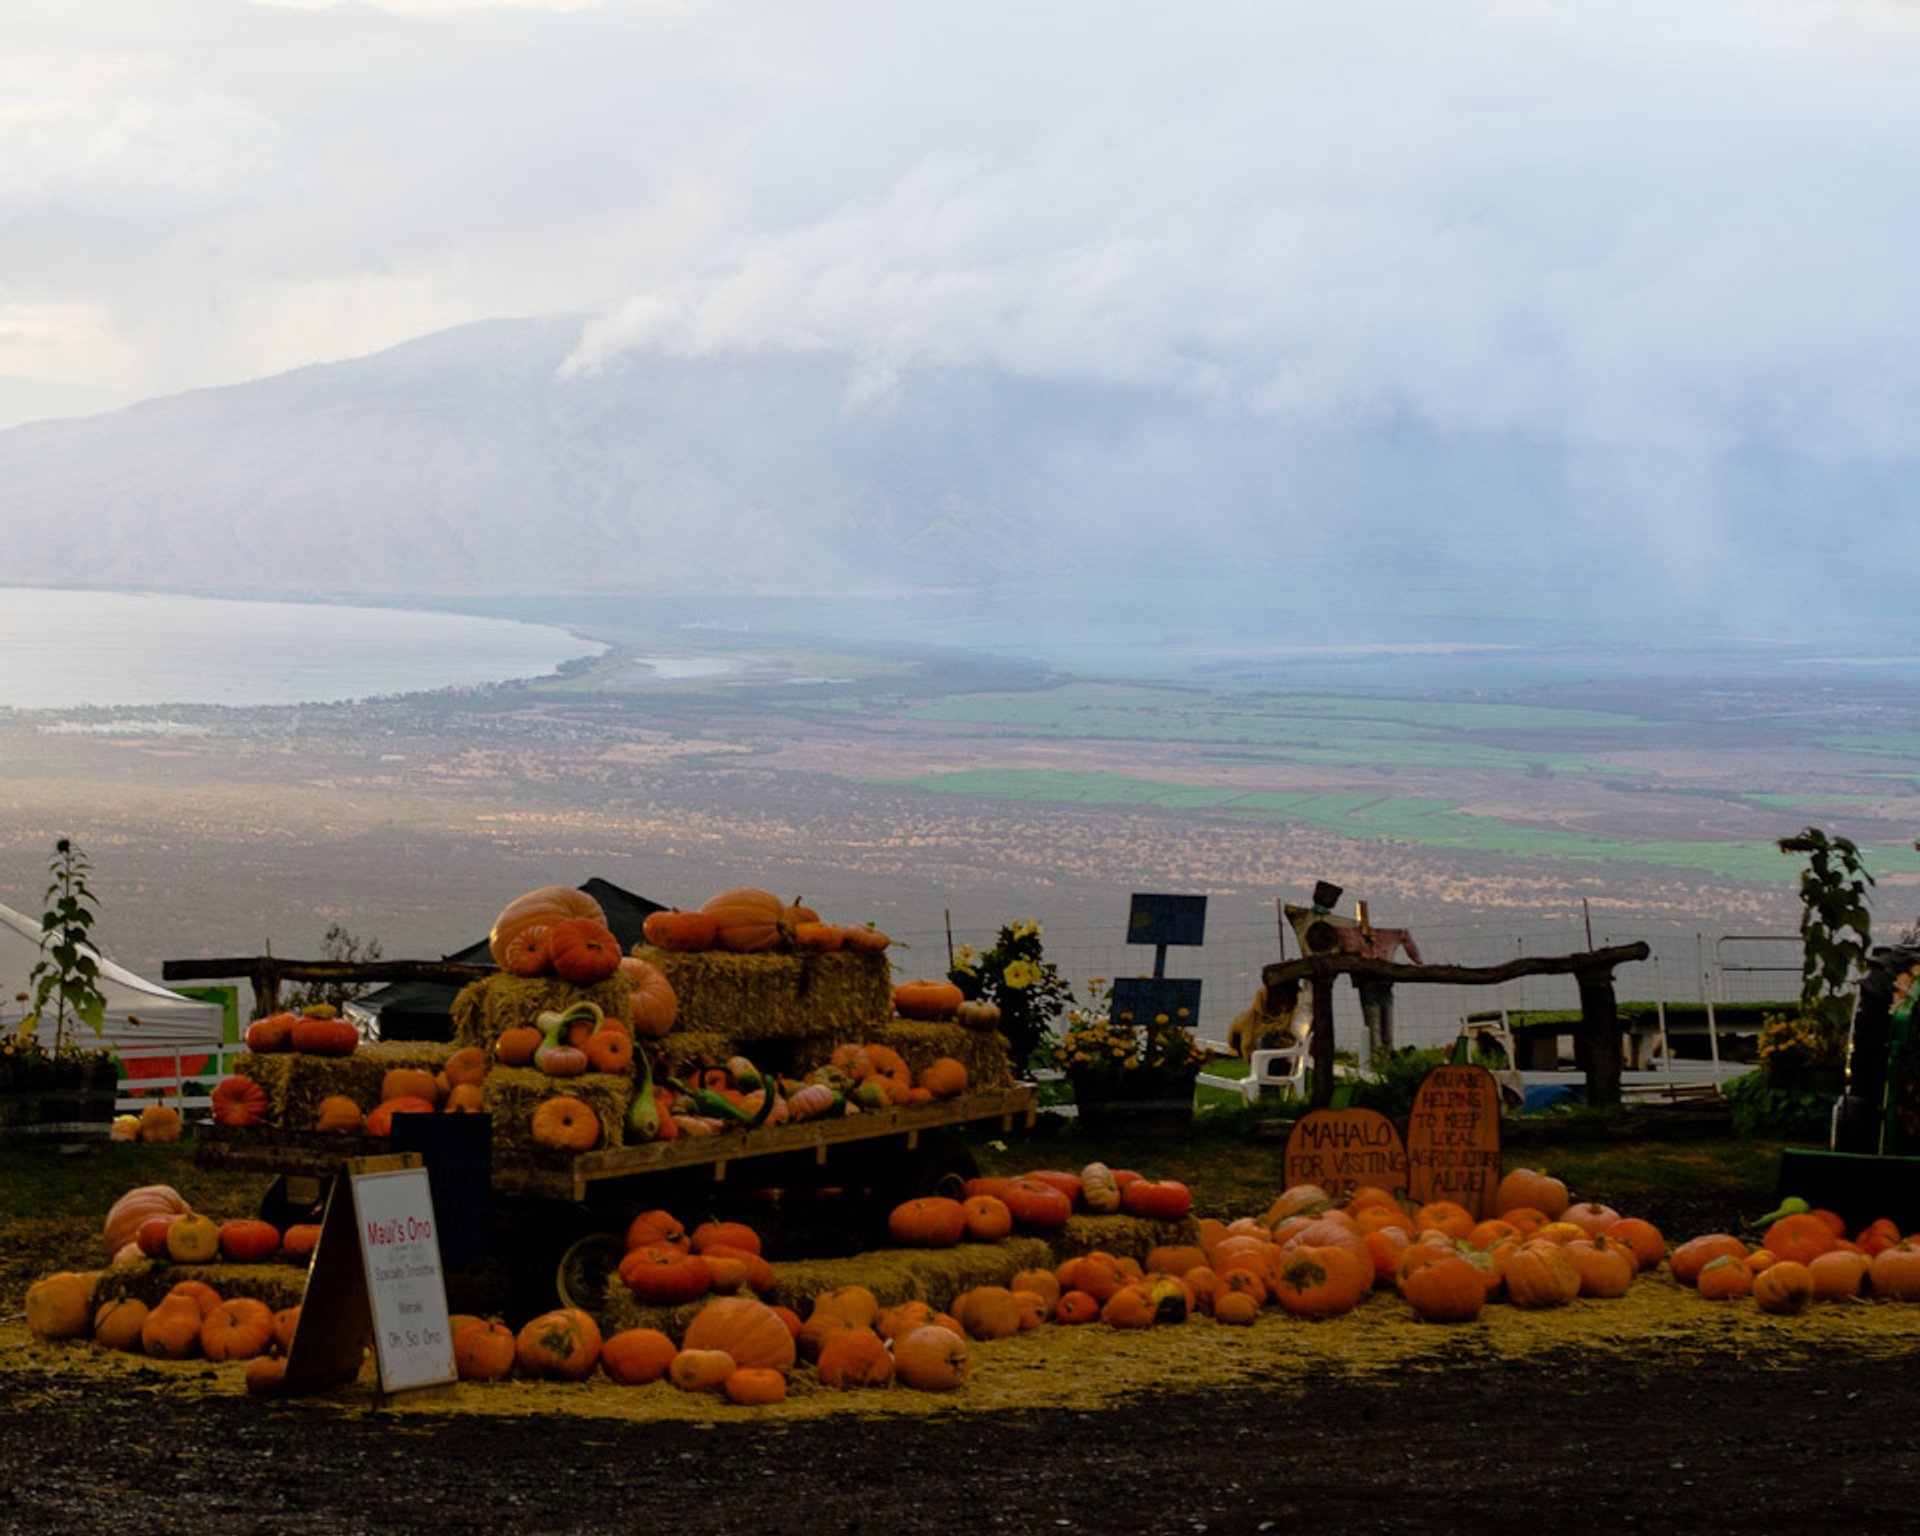 Pumpkin fun with Maui's valley in the background, Kula, Maui, Hawaii 2020